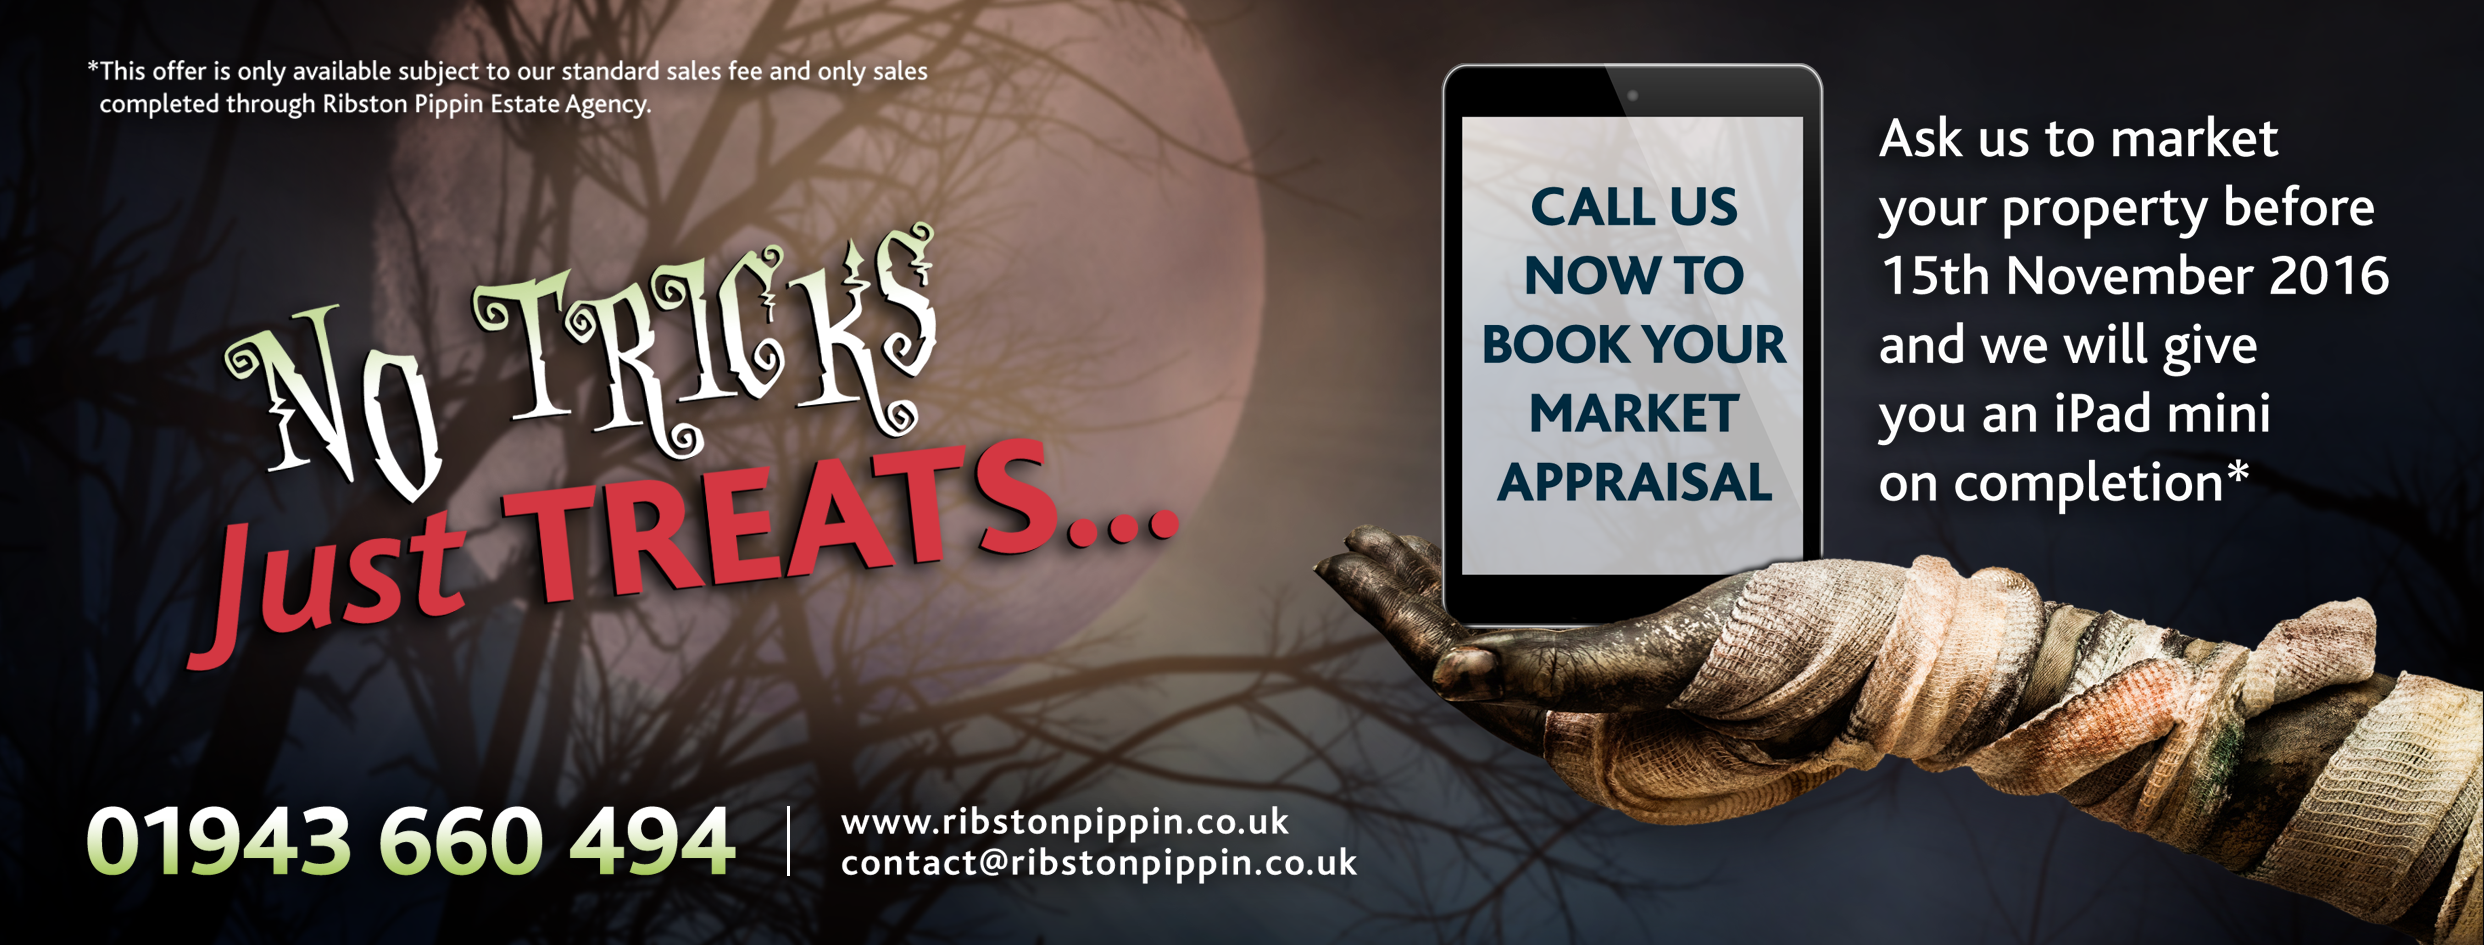 Call us now to book your market appraisal